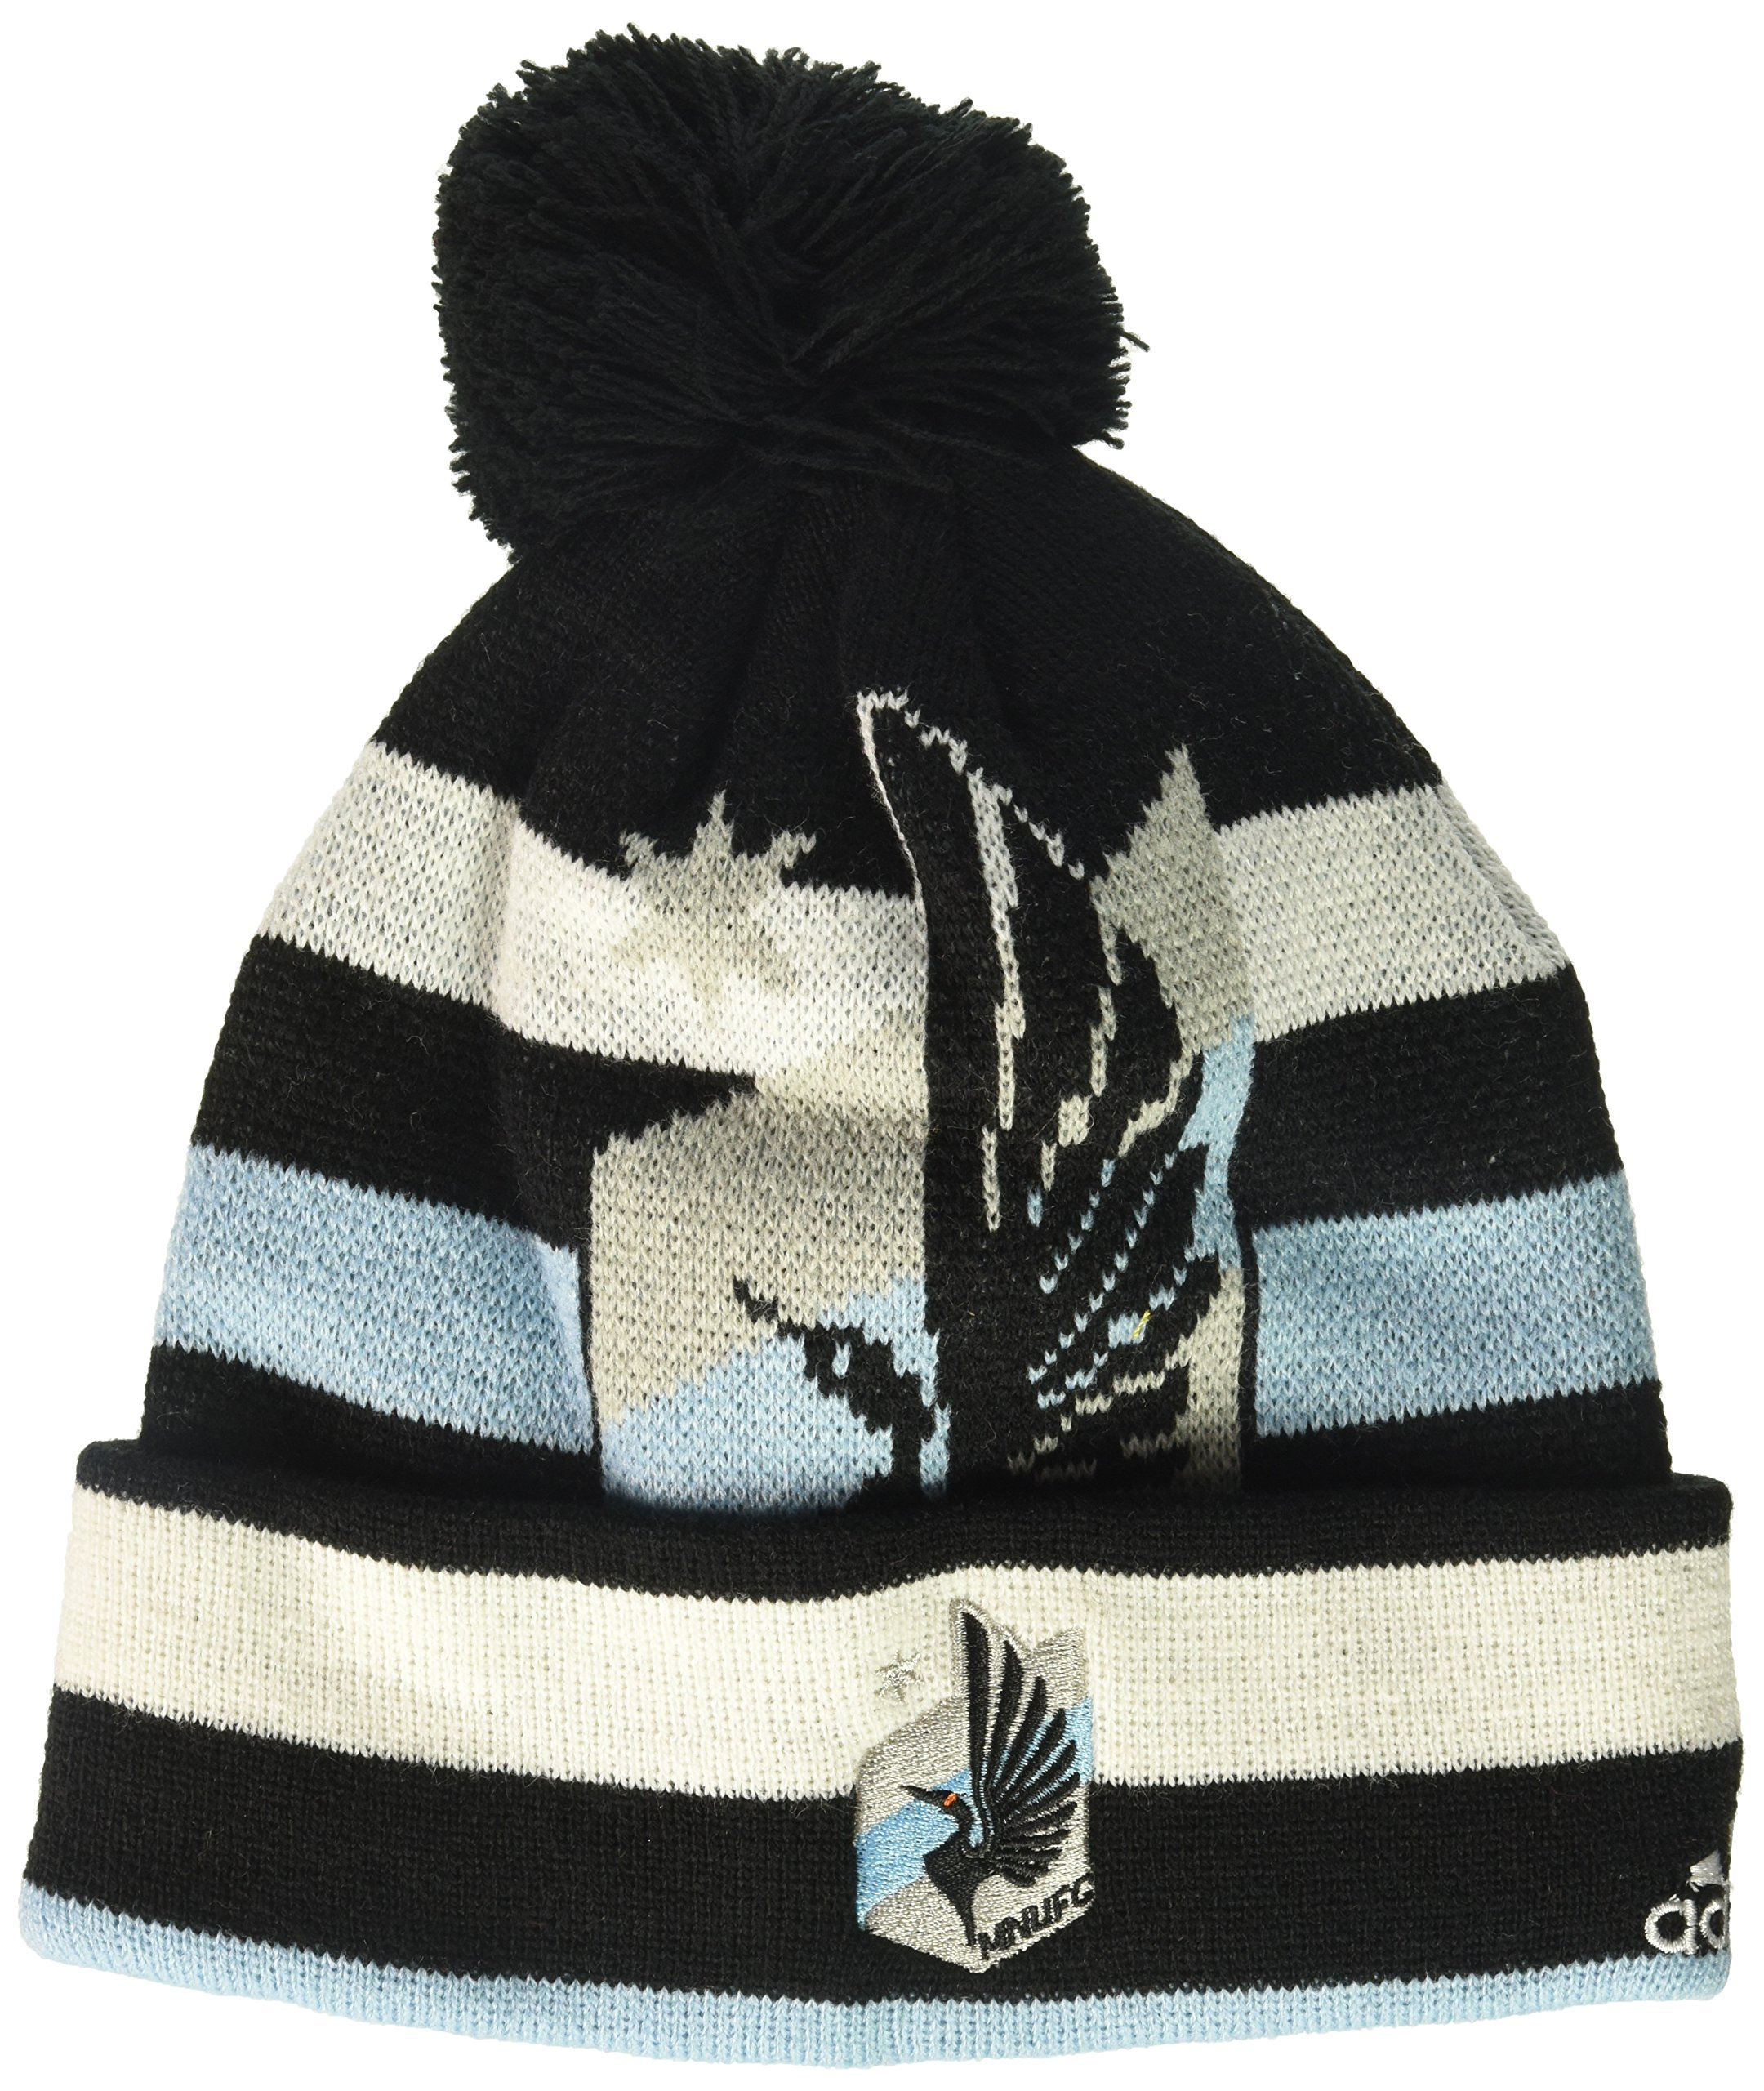 MLS Minnesota United R S8FDS Youth Boys Cuffed Knit Hat with Pom, One Size (8), Black